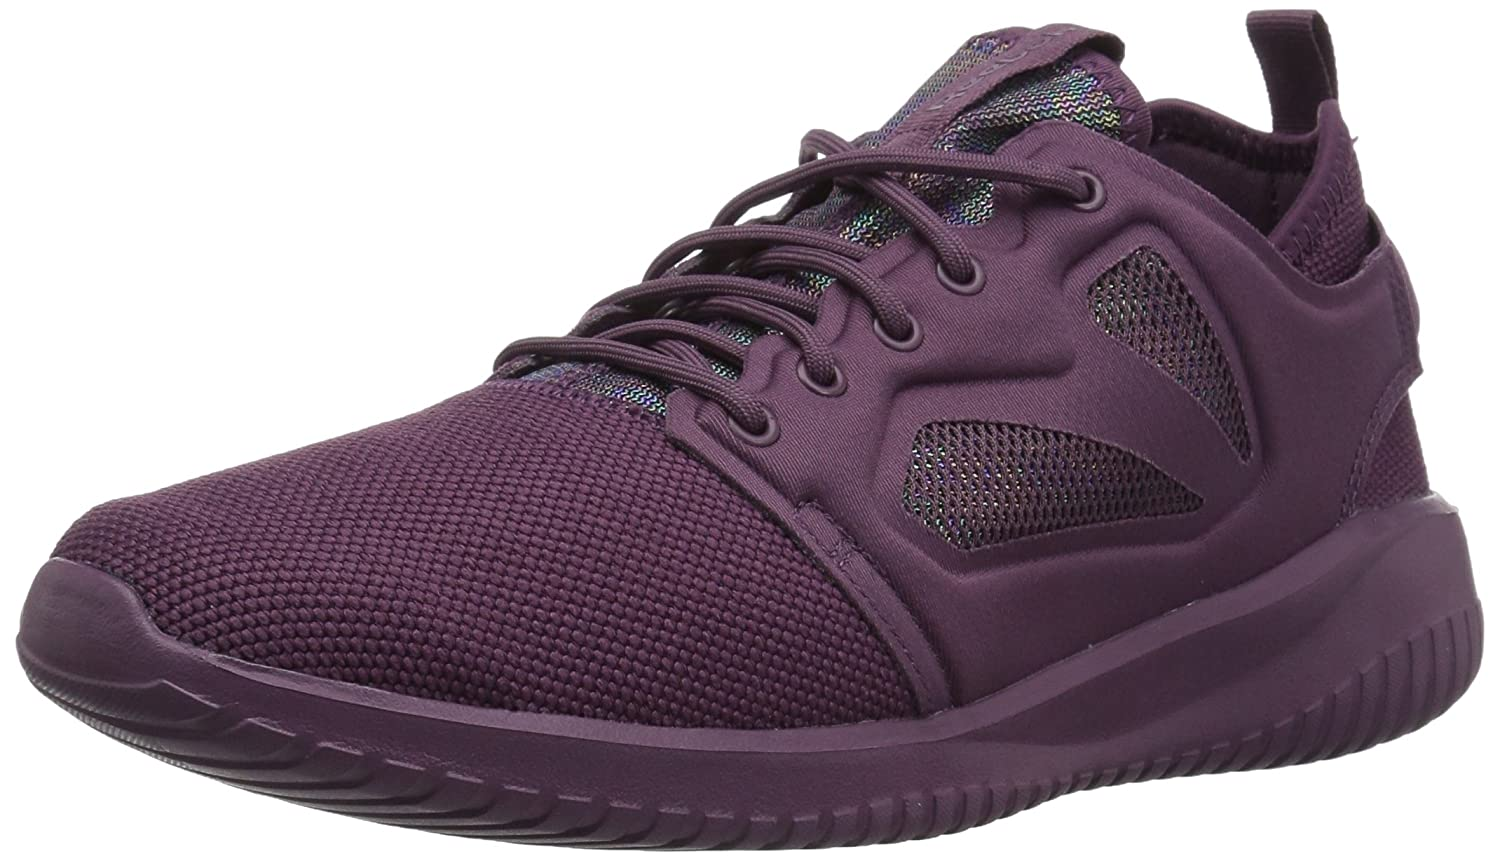 Reebok Women's Skycush Evolution Lux Fashion Sneaker B074WBWRNX 7.5 B(M) US|Washed Plum